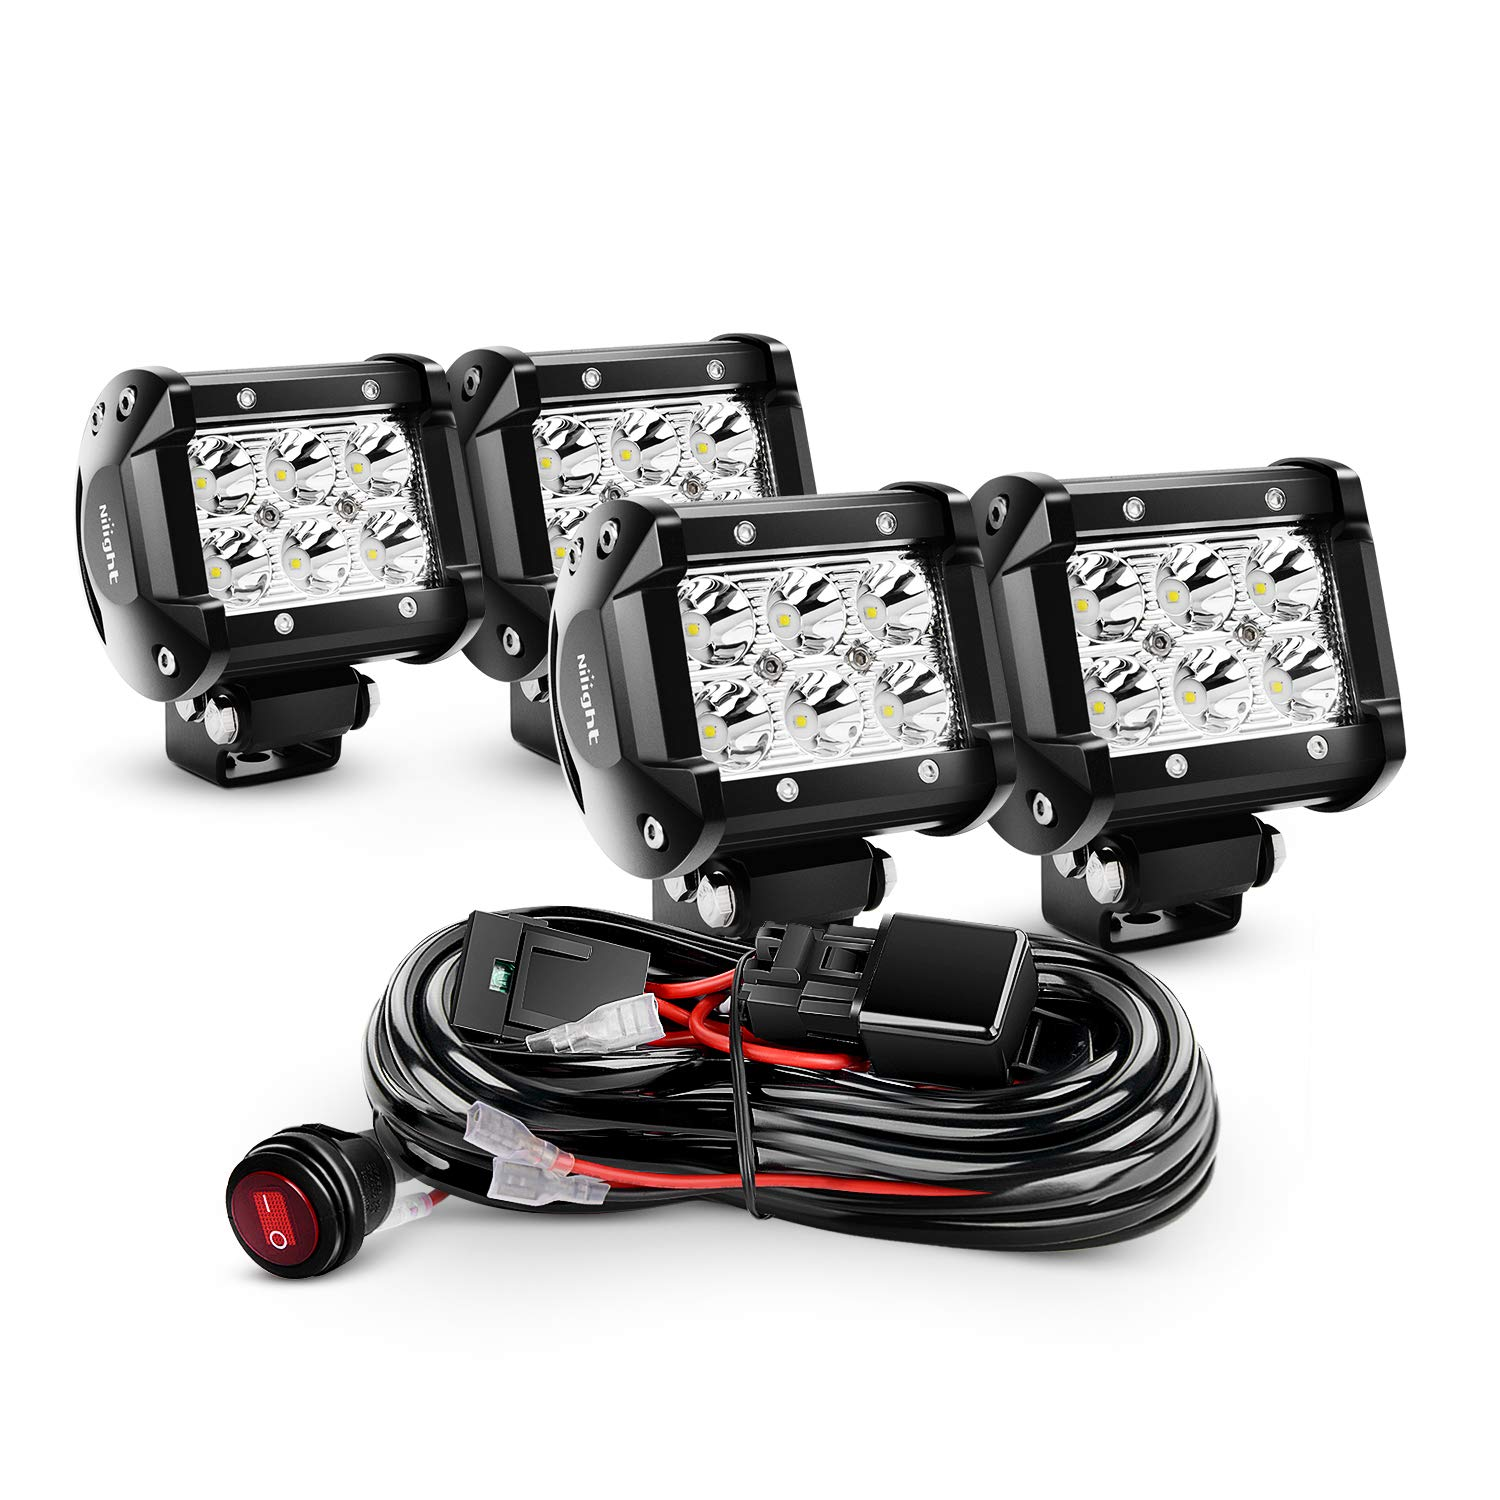 Nilight 4pcs 4 Inch 18w Spot Led Light Bars Work Sale 10pcs Universal Off Road Jeep Bar Wiring Harness Kit Lights Fog Driving With 2 Years